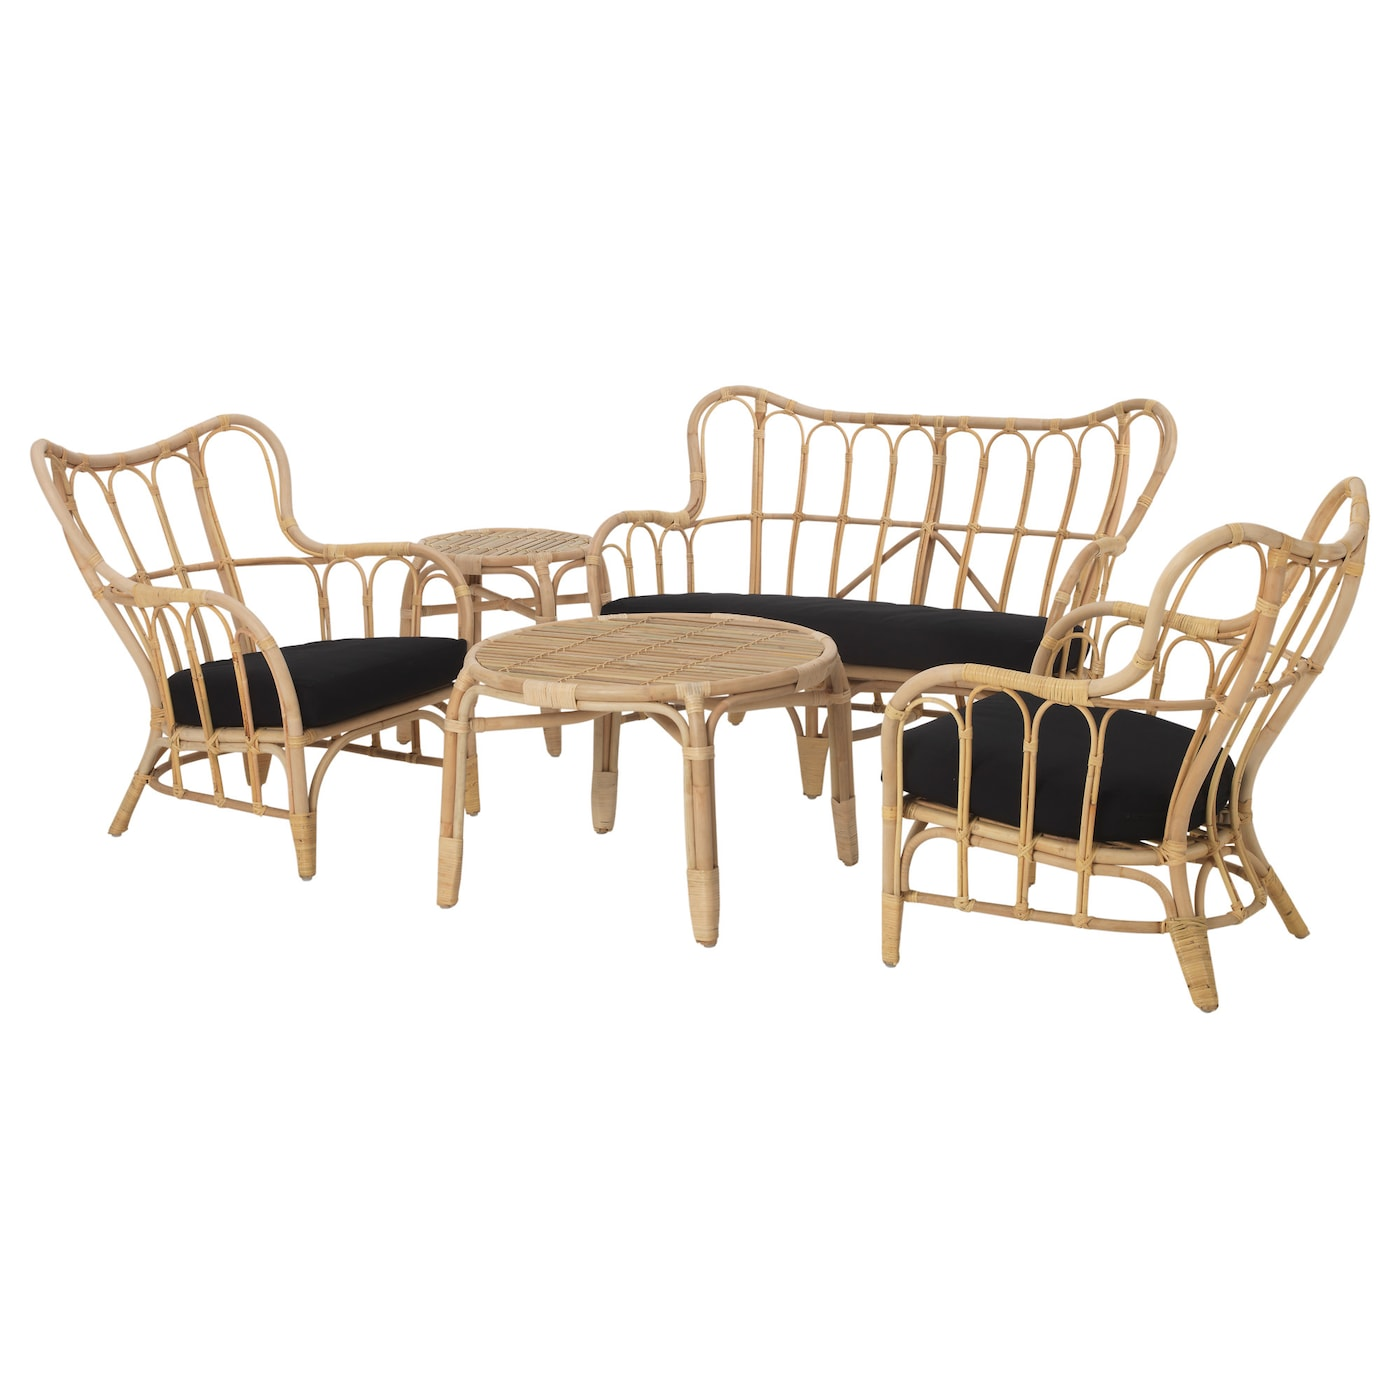 IKEA MASTHOLMEN 4-seat conversation set, outdoor